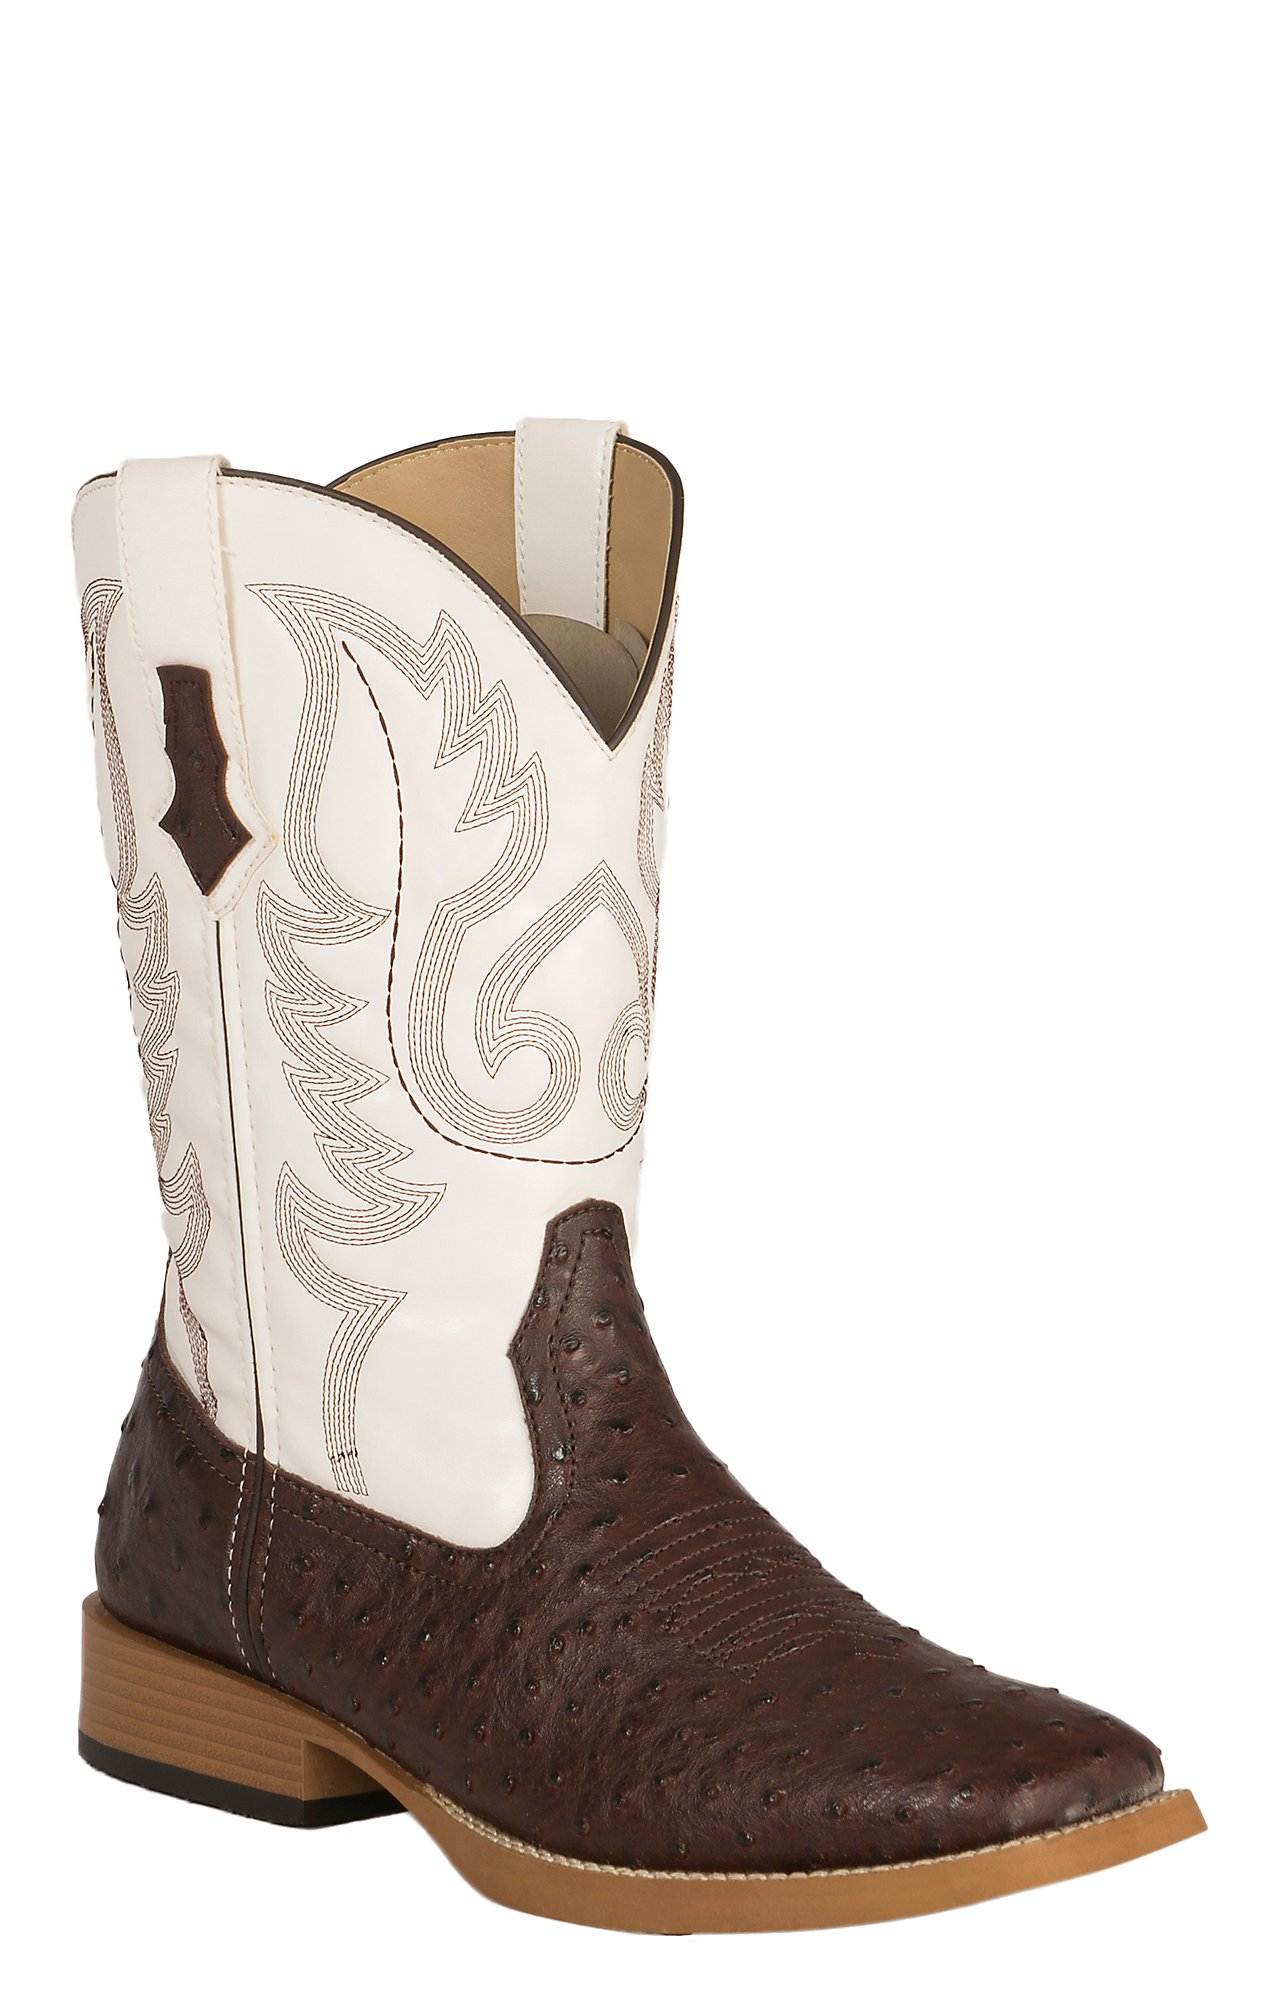 Roper Mens Brown Ostrich Print W White Top Double Welt Square Toe Western Boots Cut Engineer Crocodile Safety Steel Genuine Leather